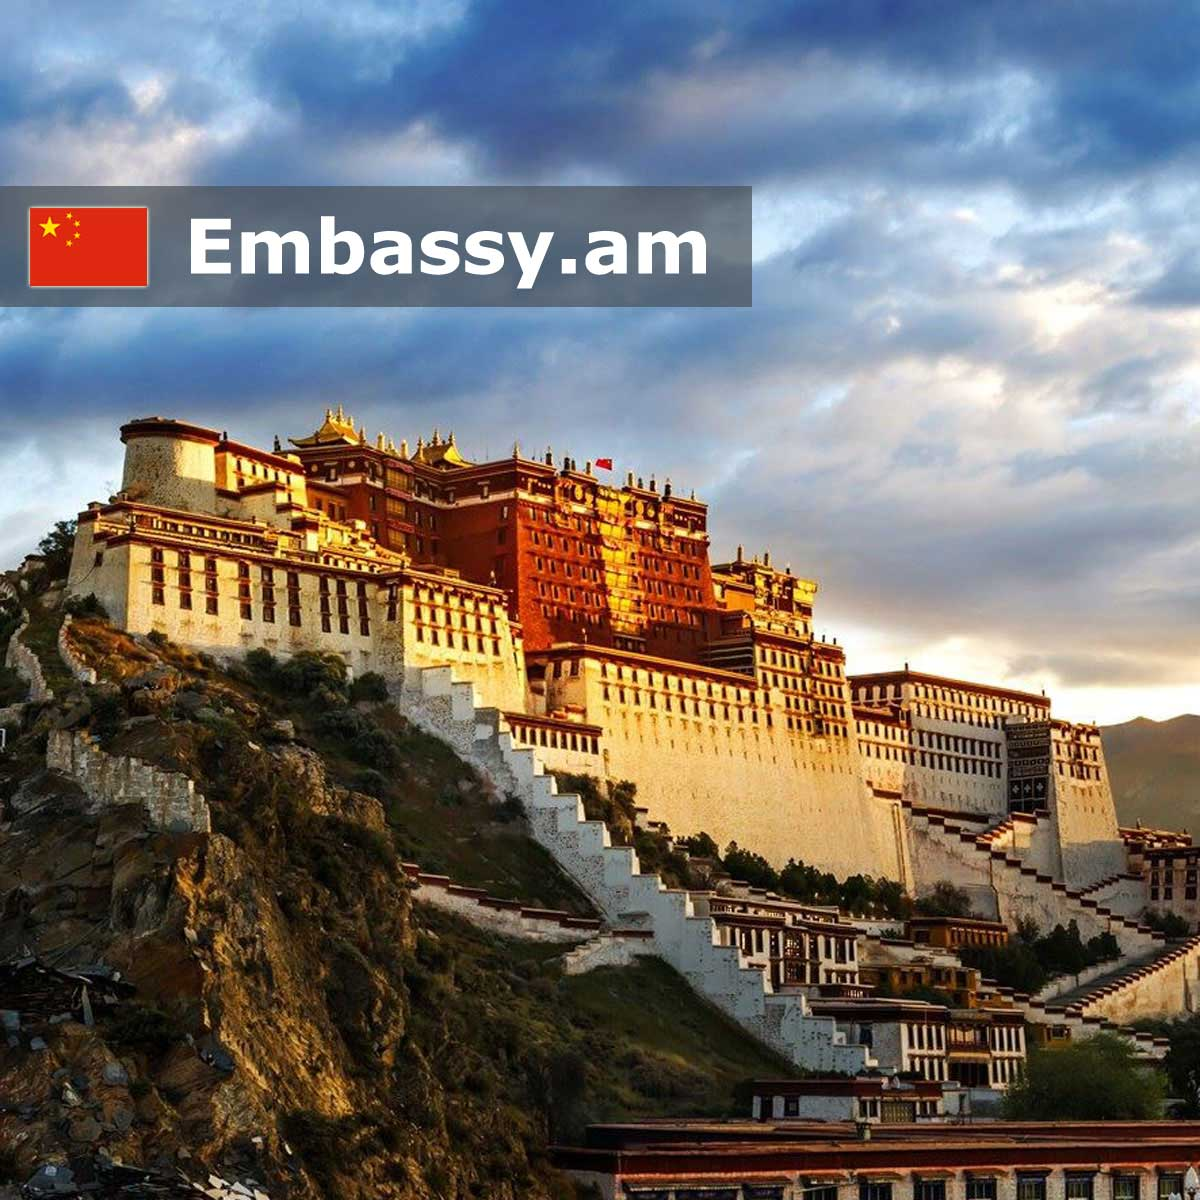 Lhasa - Hotels in China - Embassy.am